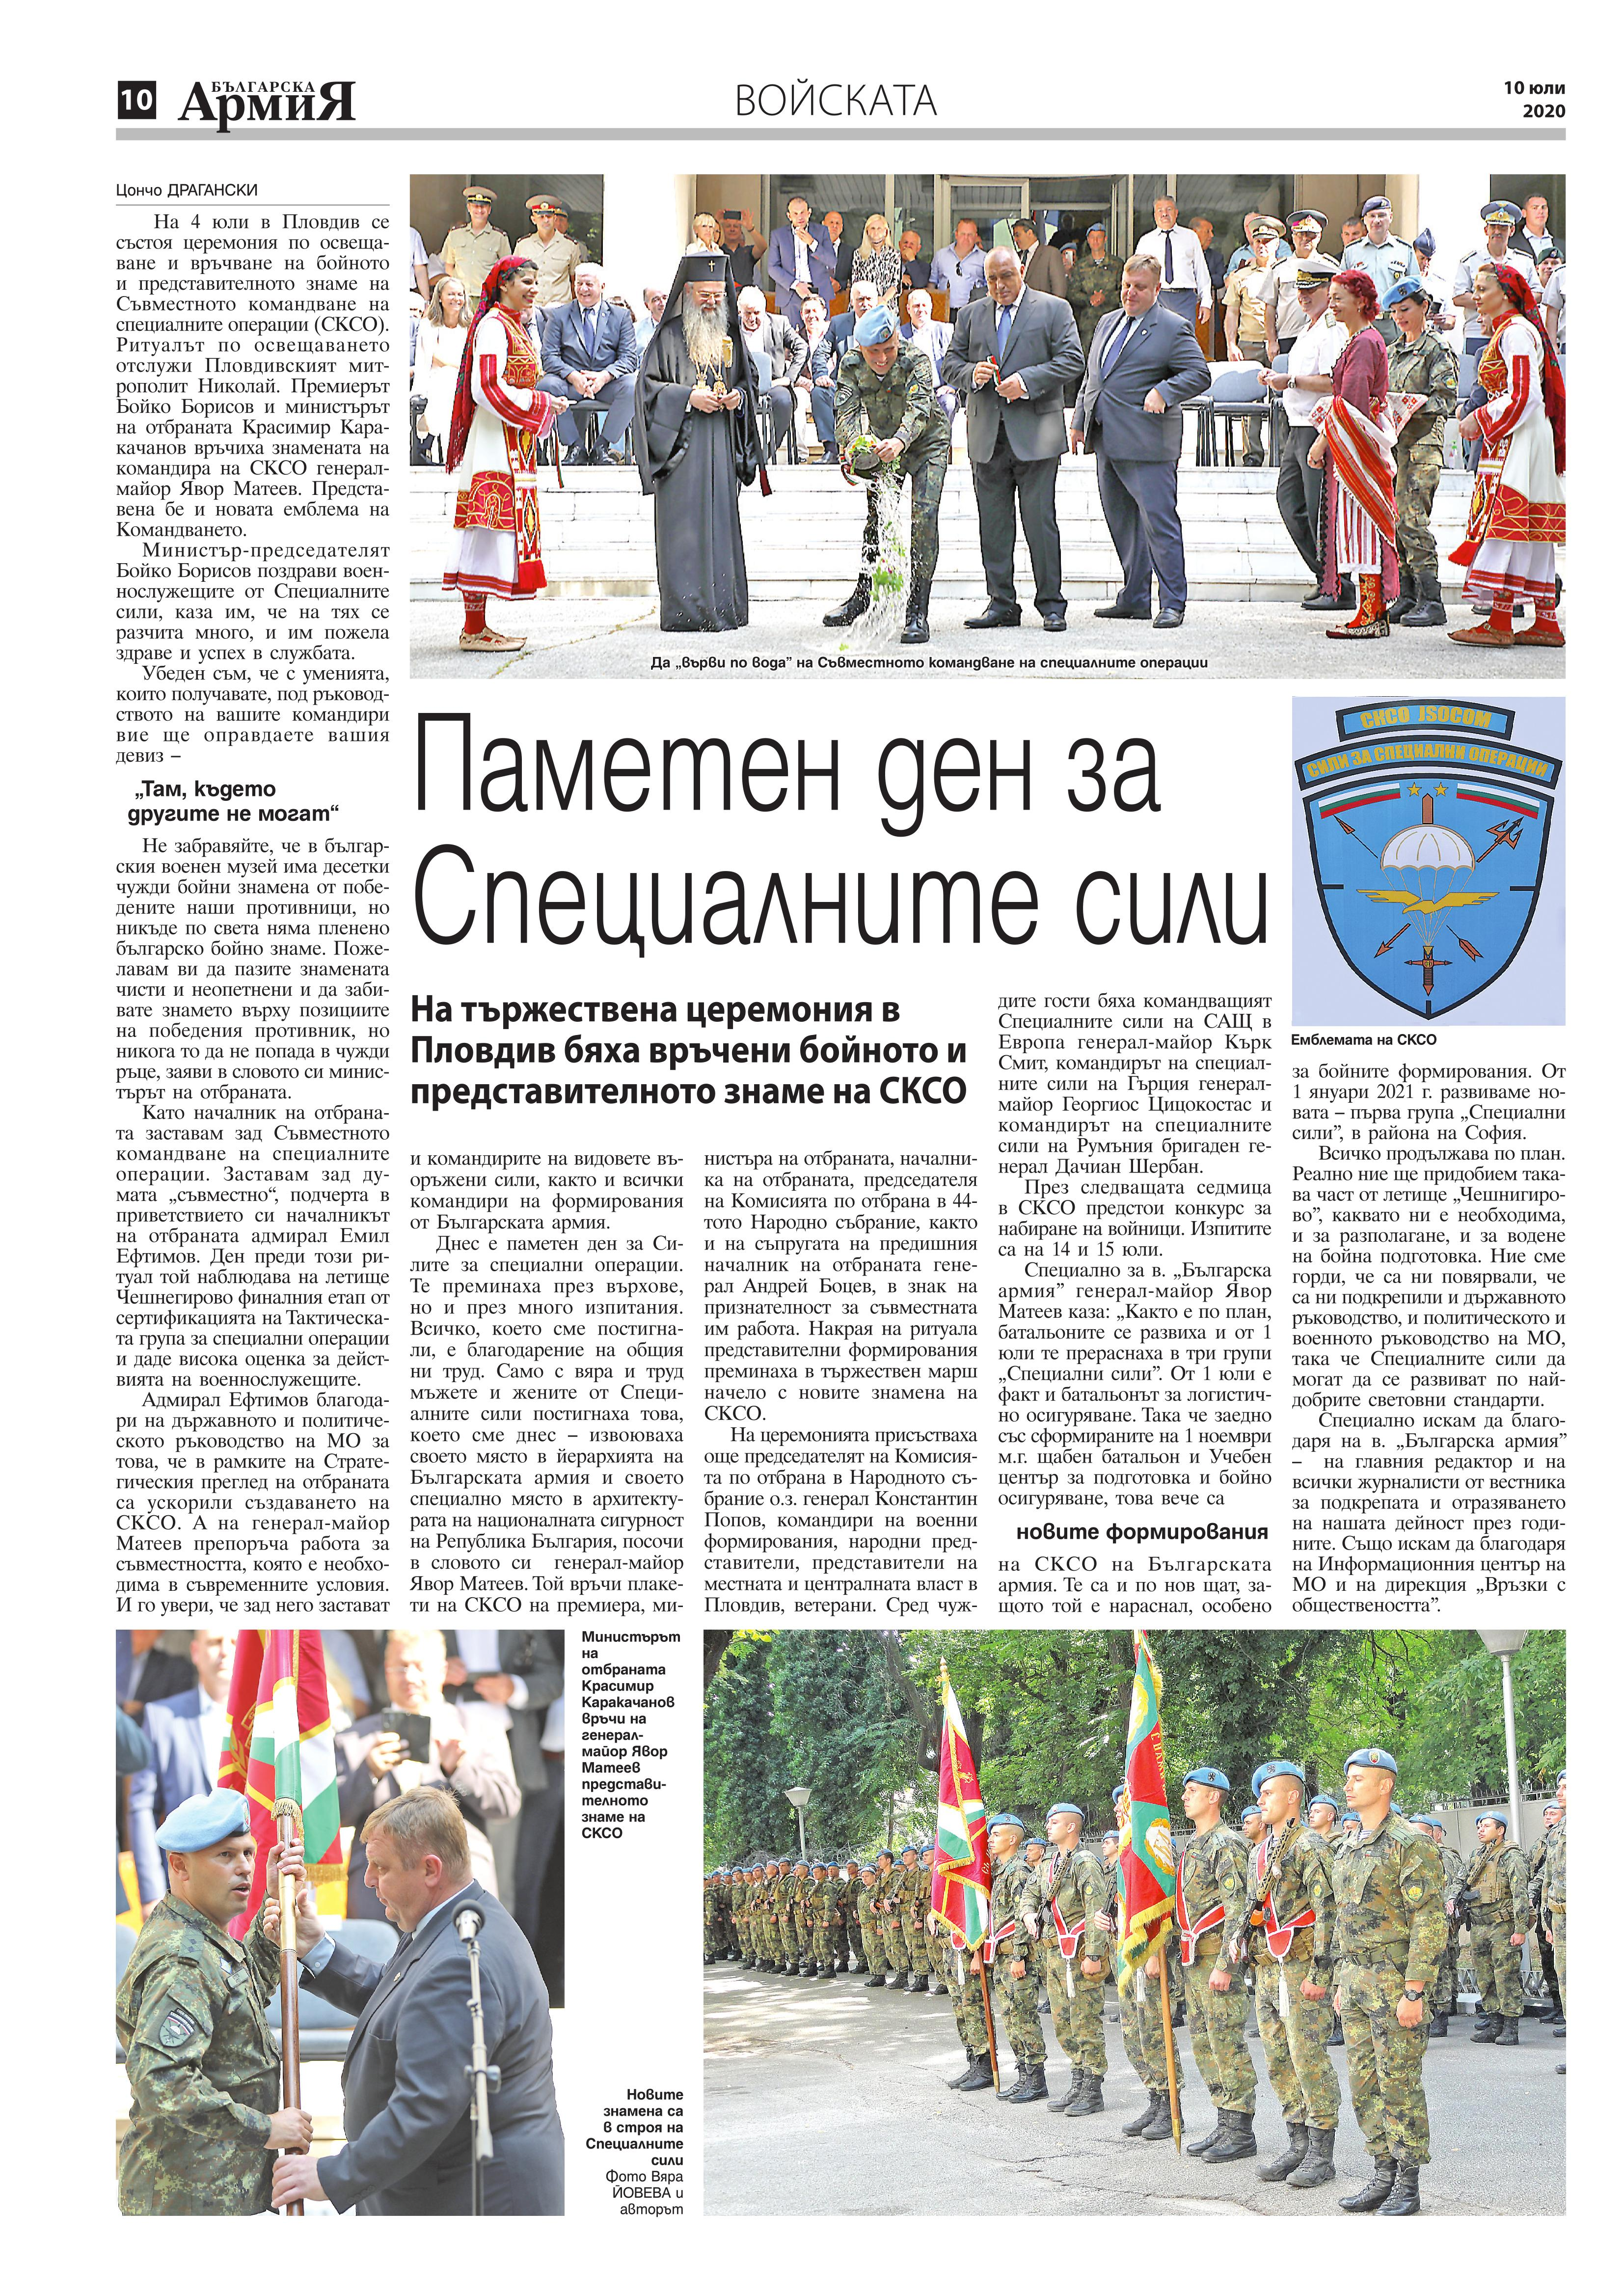 https://armymedia.bg/wp-content/uploads/2015/06/10.page1_-146.jpg